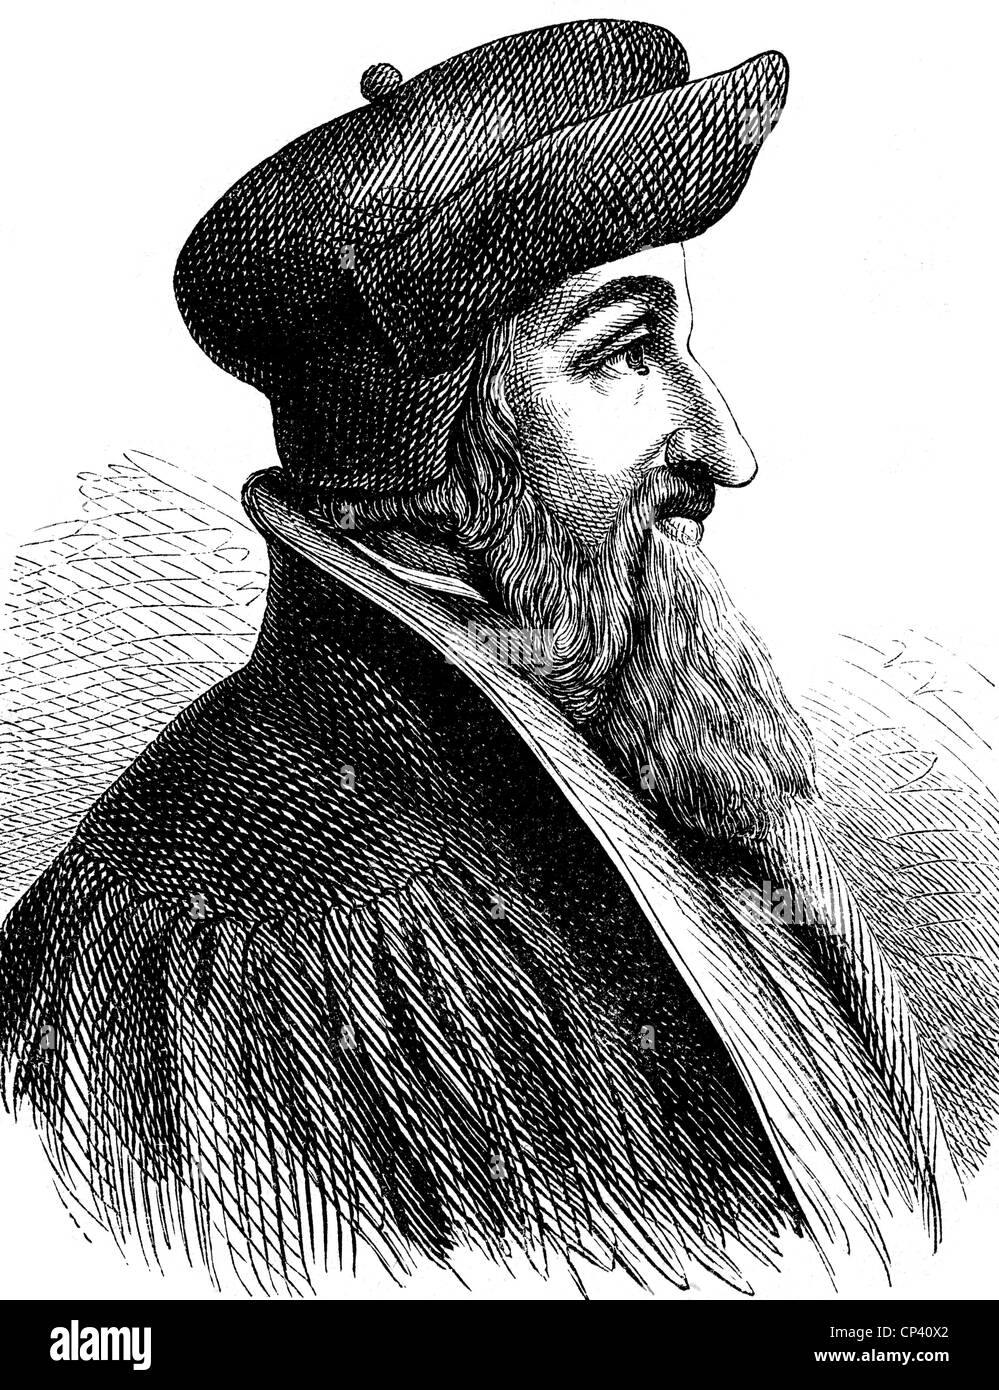 Oecolampadius, Johannes, 1482 - 24.11.1531, German reformer, portrait, wood engraving, 19th century, , Additional - Stock Image